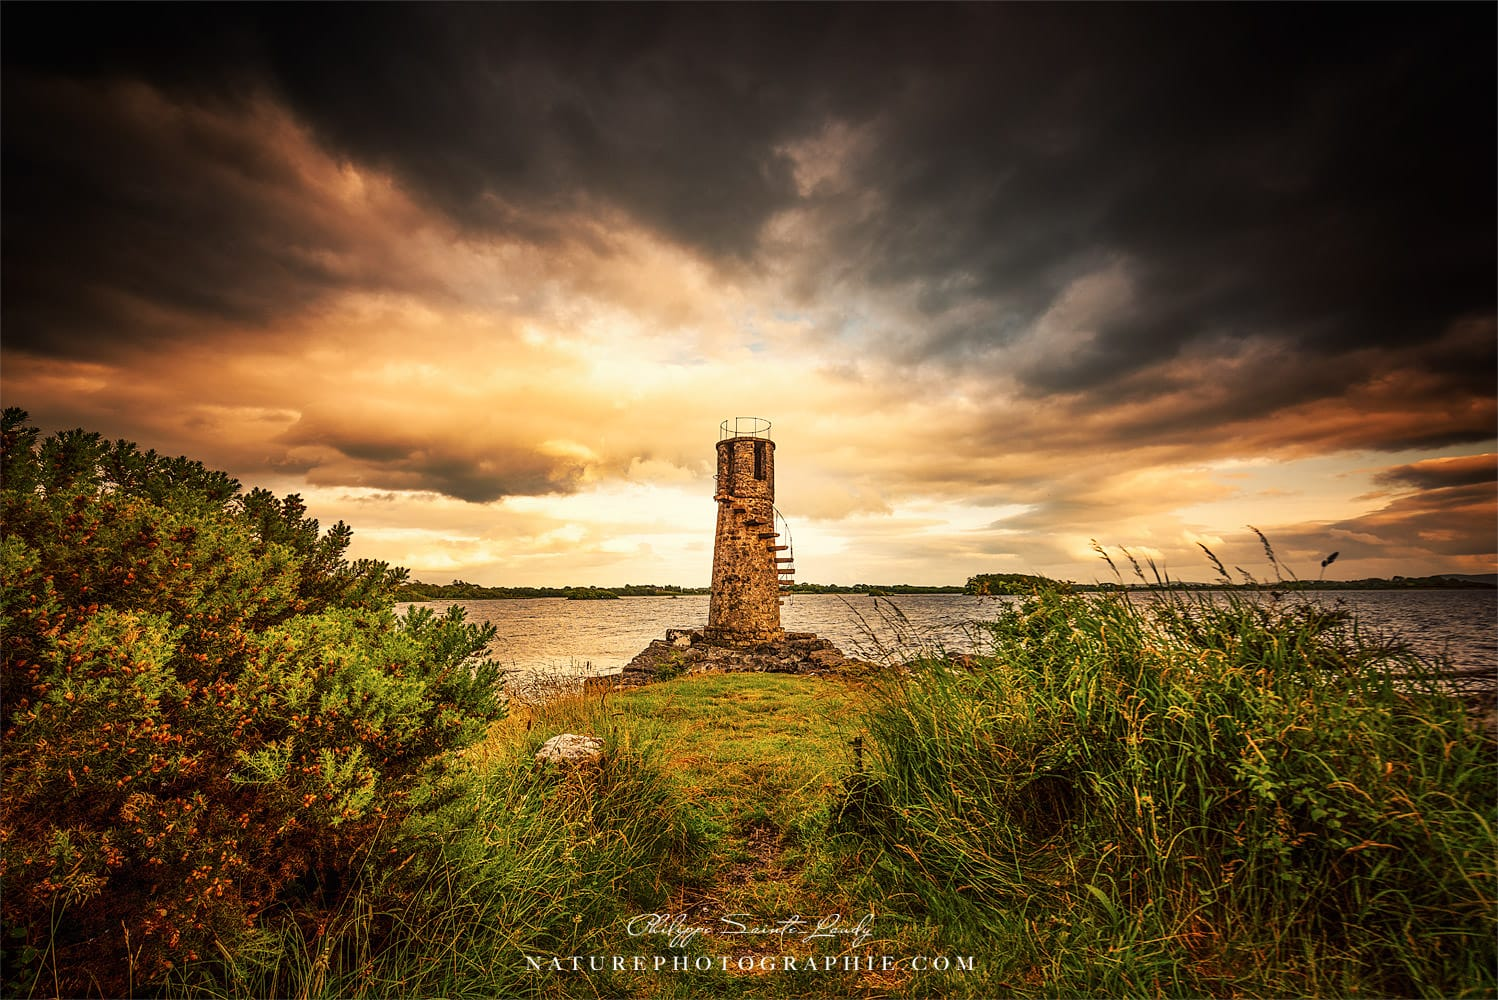 Photo dramatique du phare de Ballycurrin